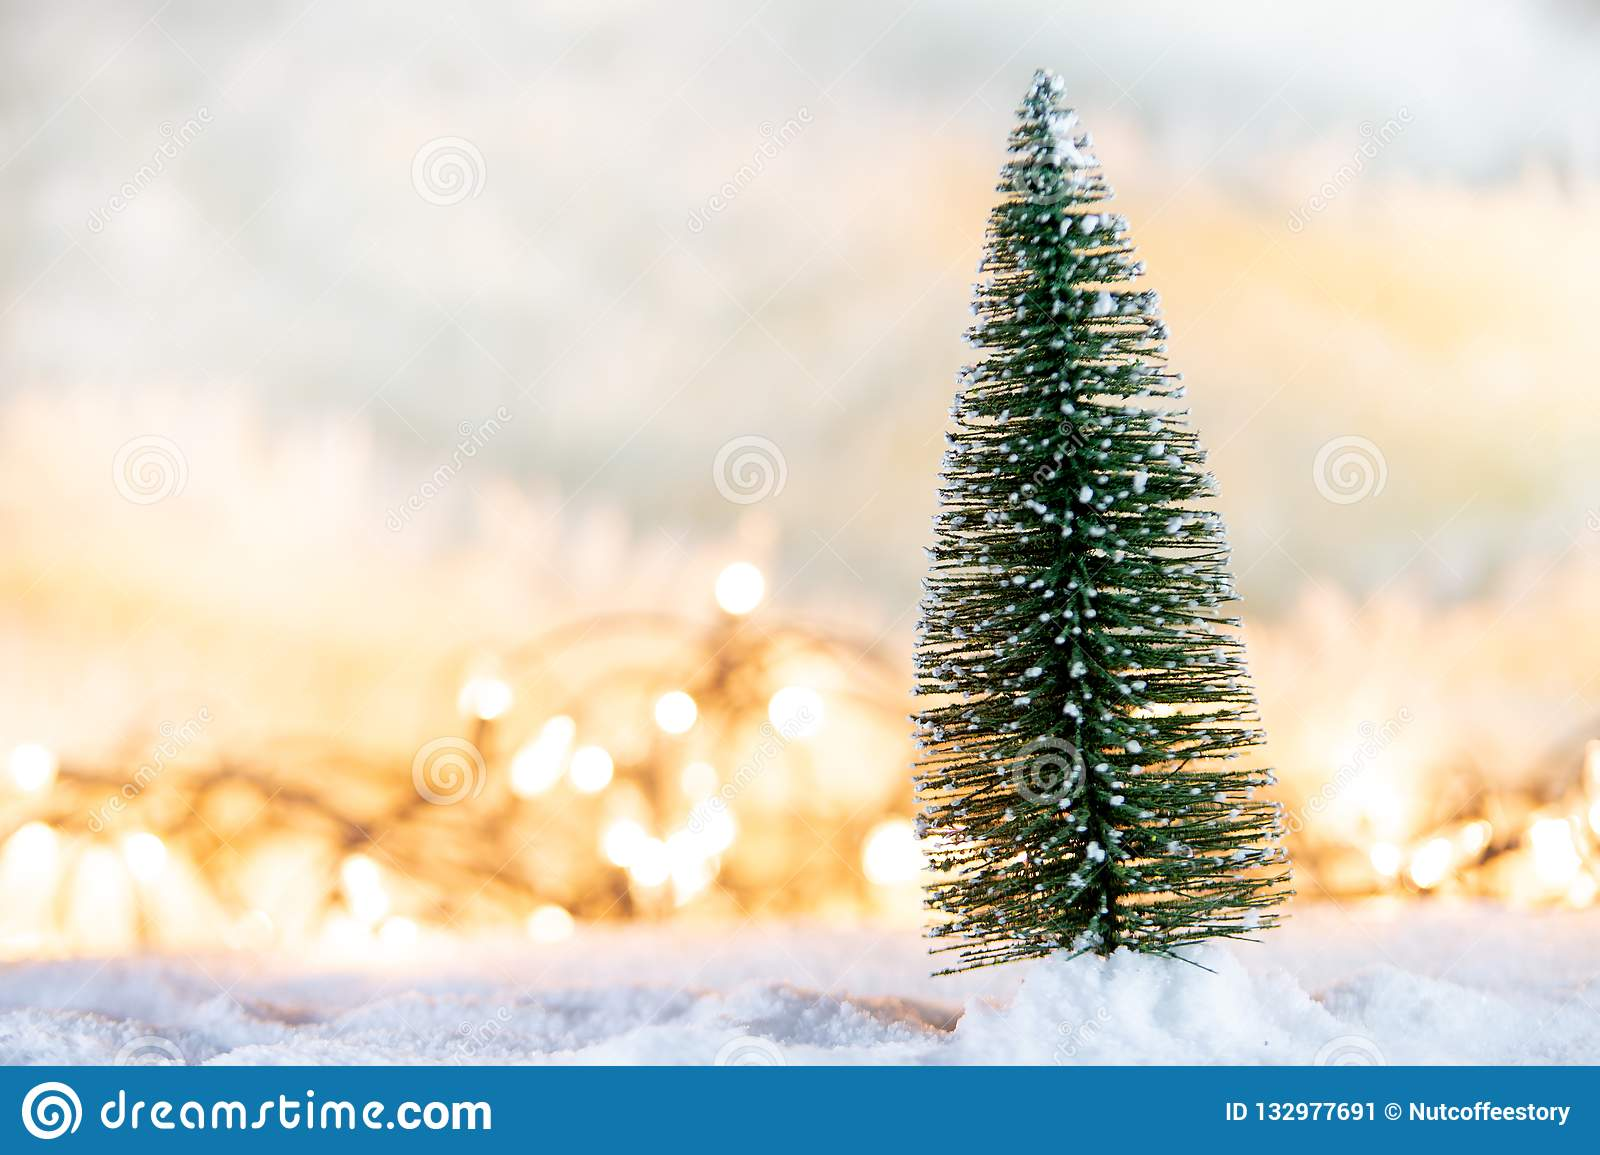 christmas tree snow gift light bokeh backgrounds snowy christmas new year festive background christmas tree snow gift 132977691